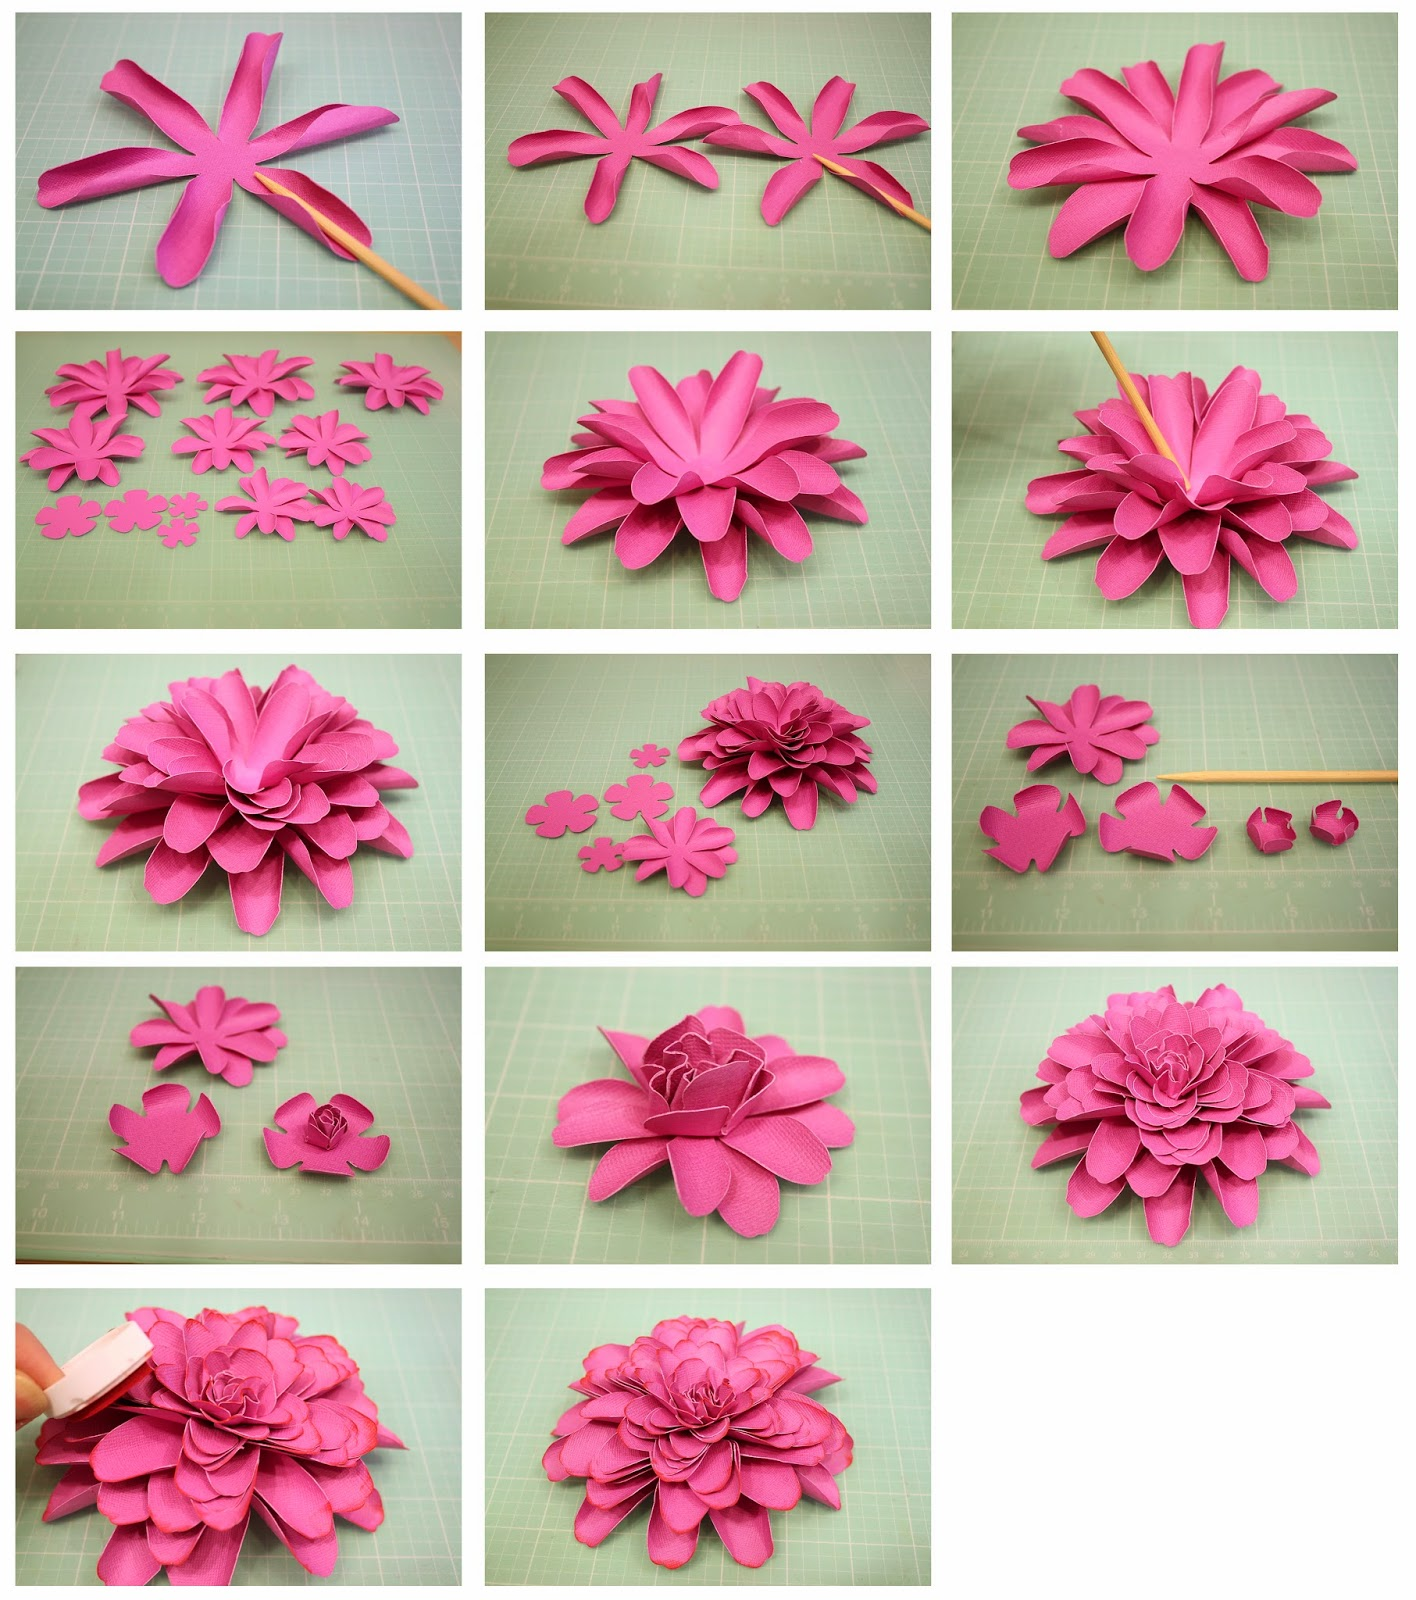 Giant Paper Flowers-How to Make Paper Garden Roses with Step by Step Tutorial